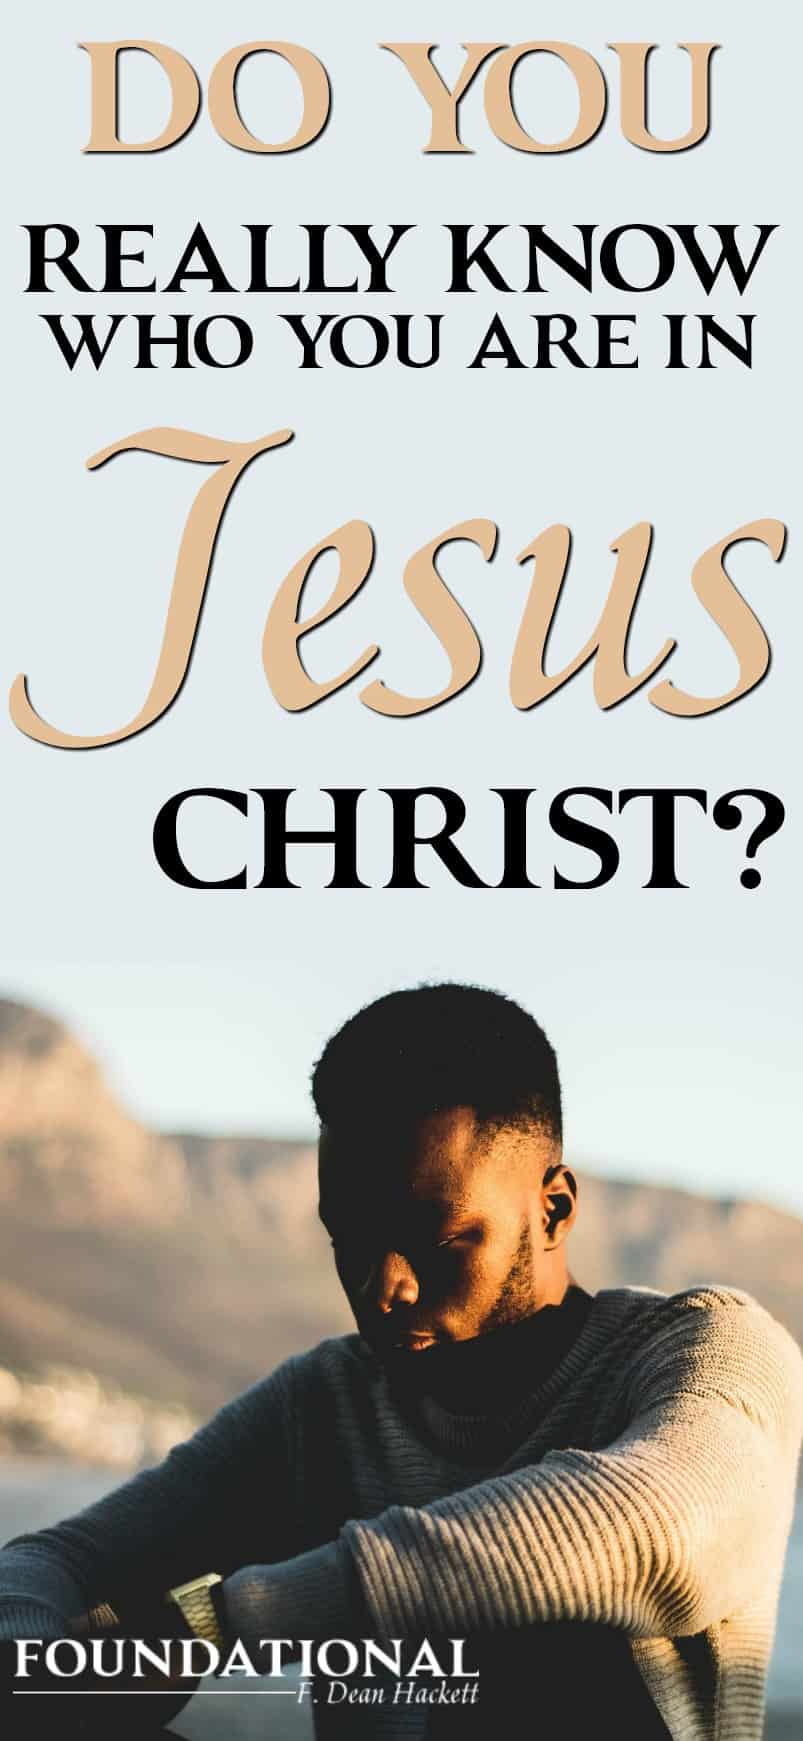 What do we do with Jesus Christ